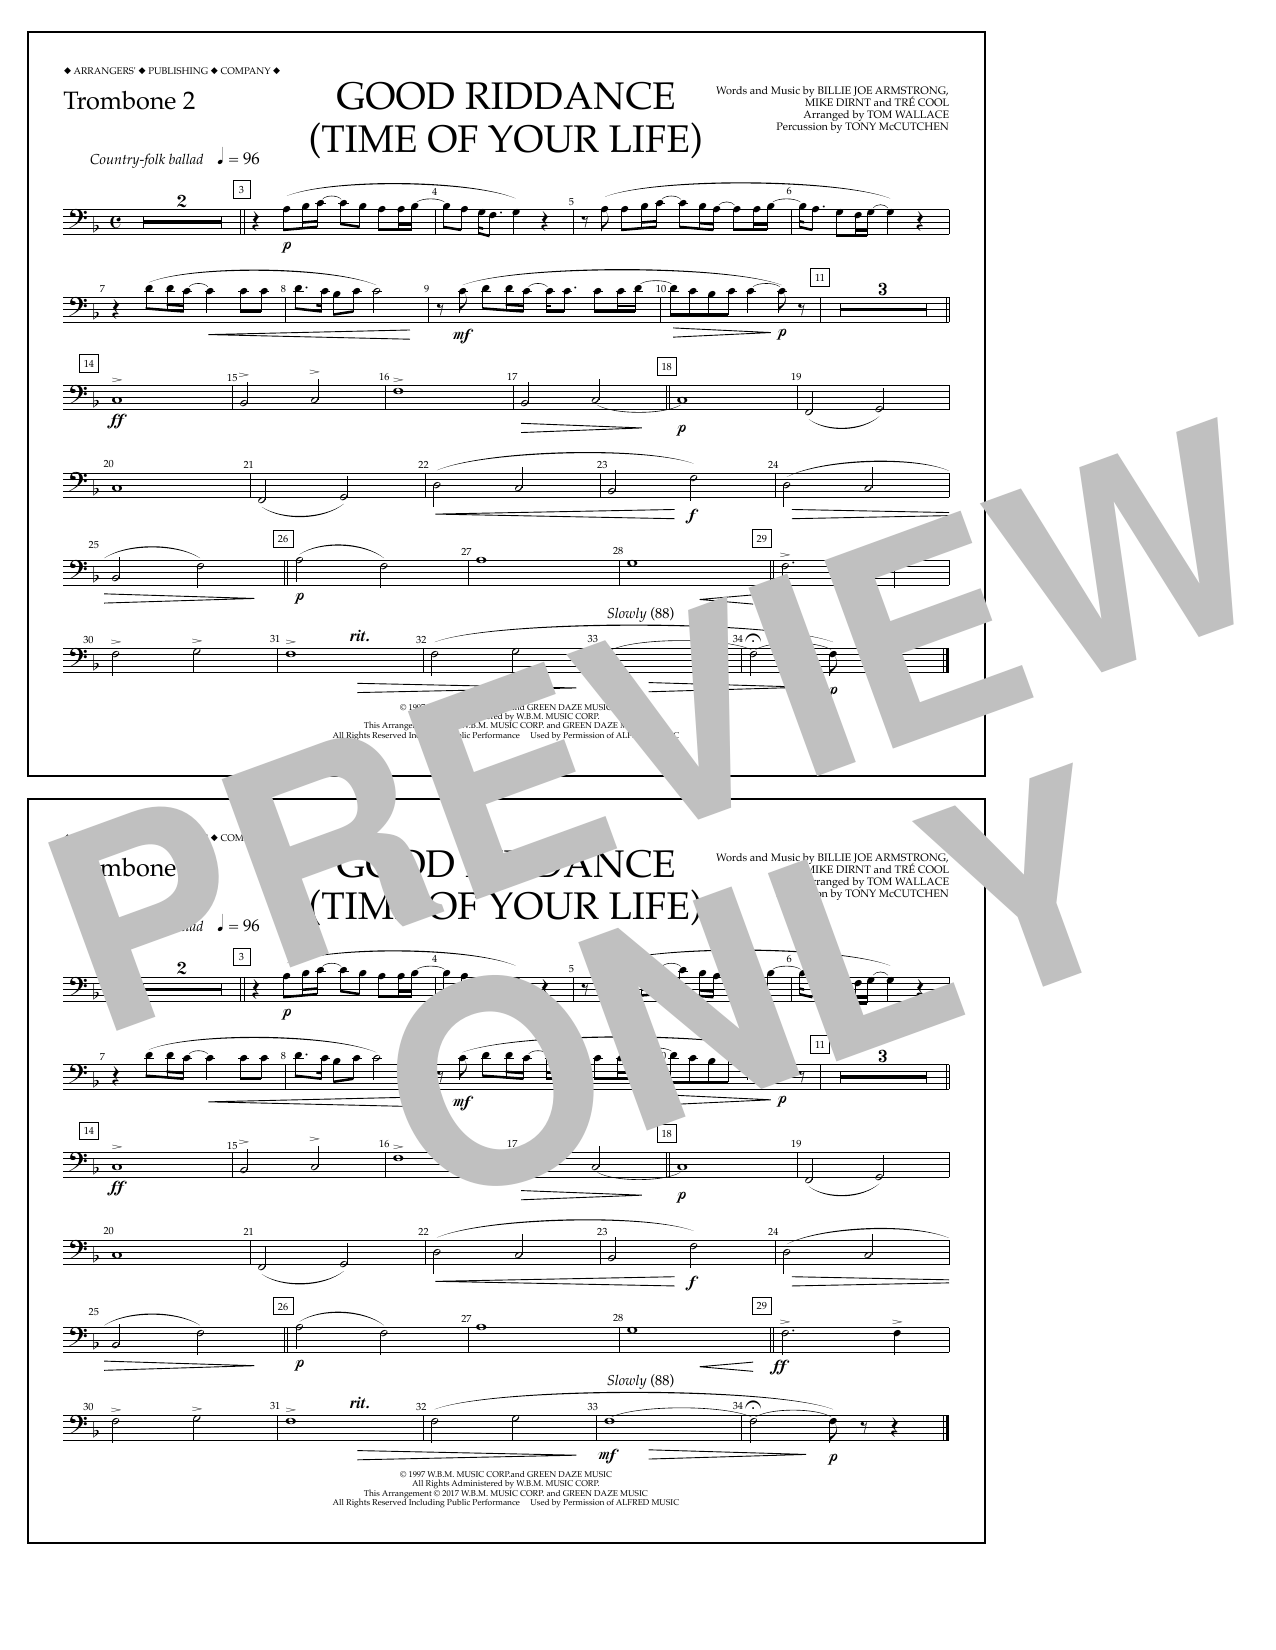 Good Riddance (Time of Your Life) - Trombone 2 Sheet Music